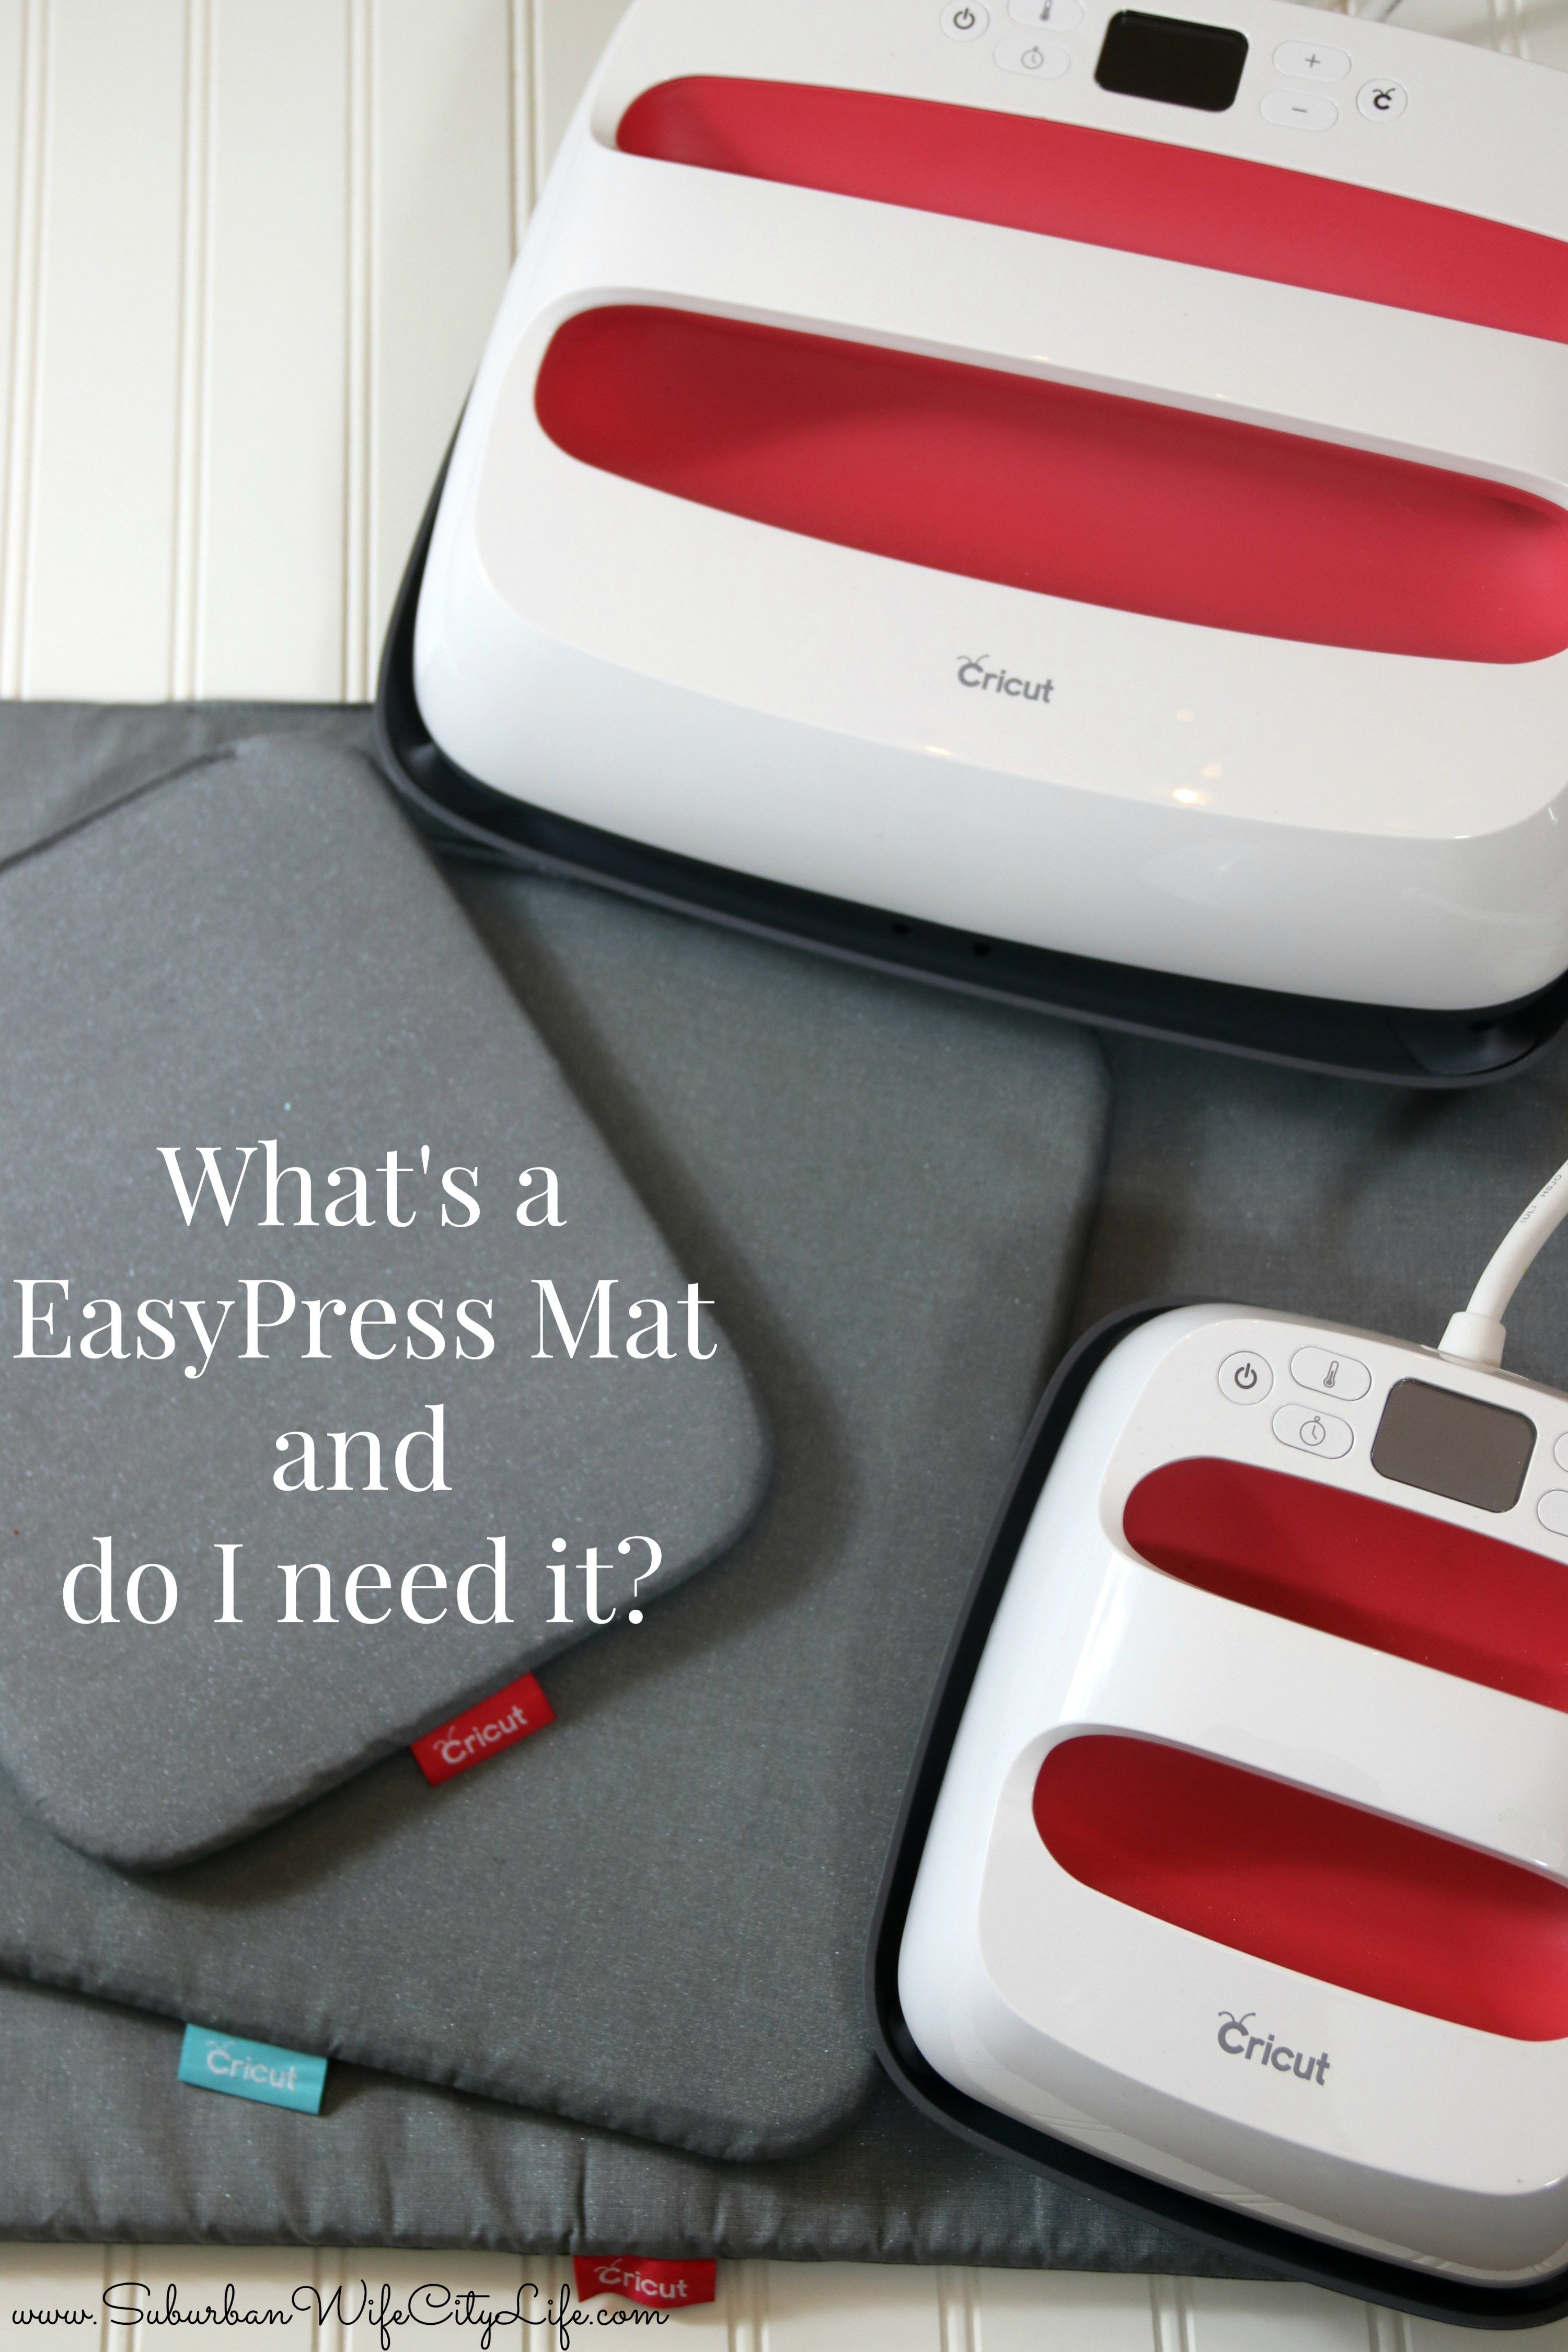 39+ Do you need the easypress mat trends